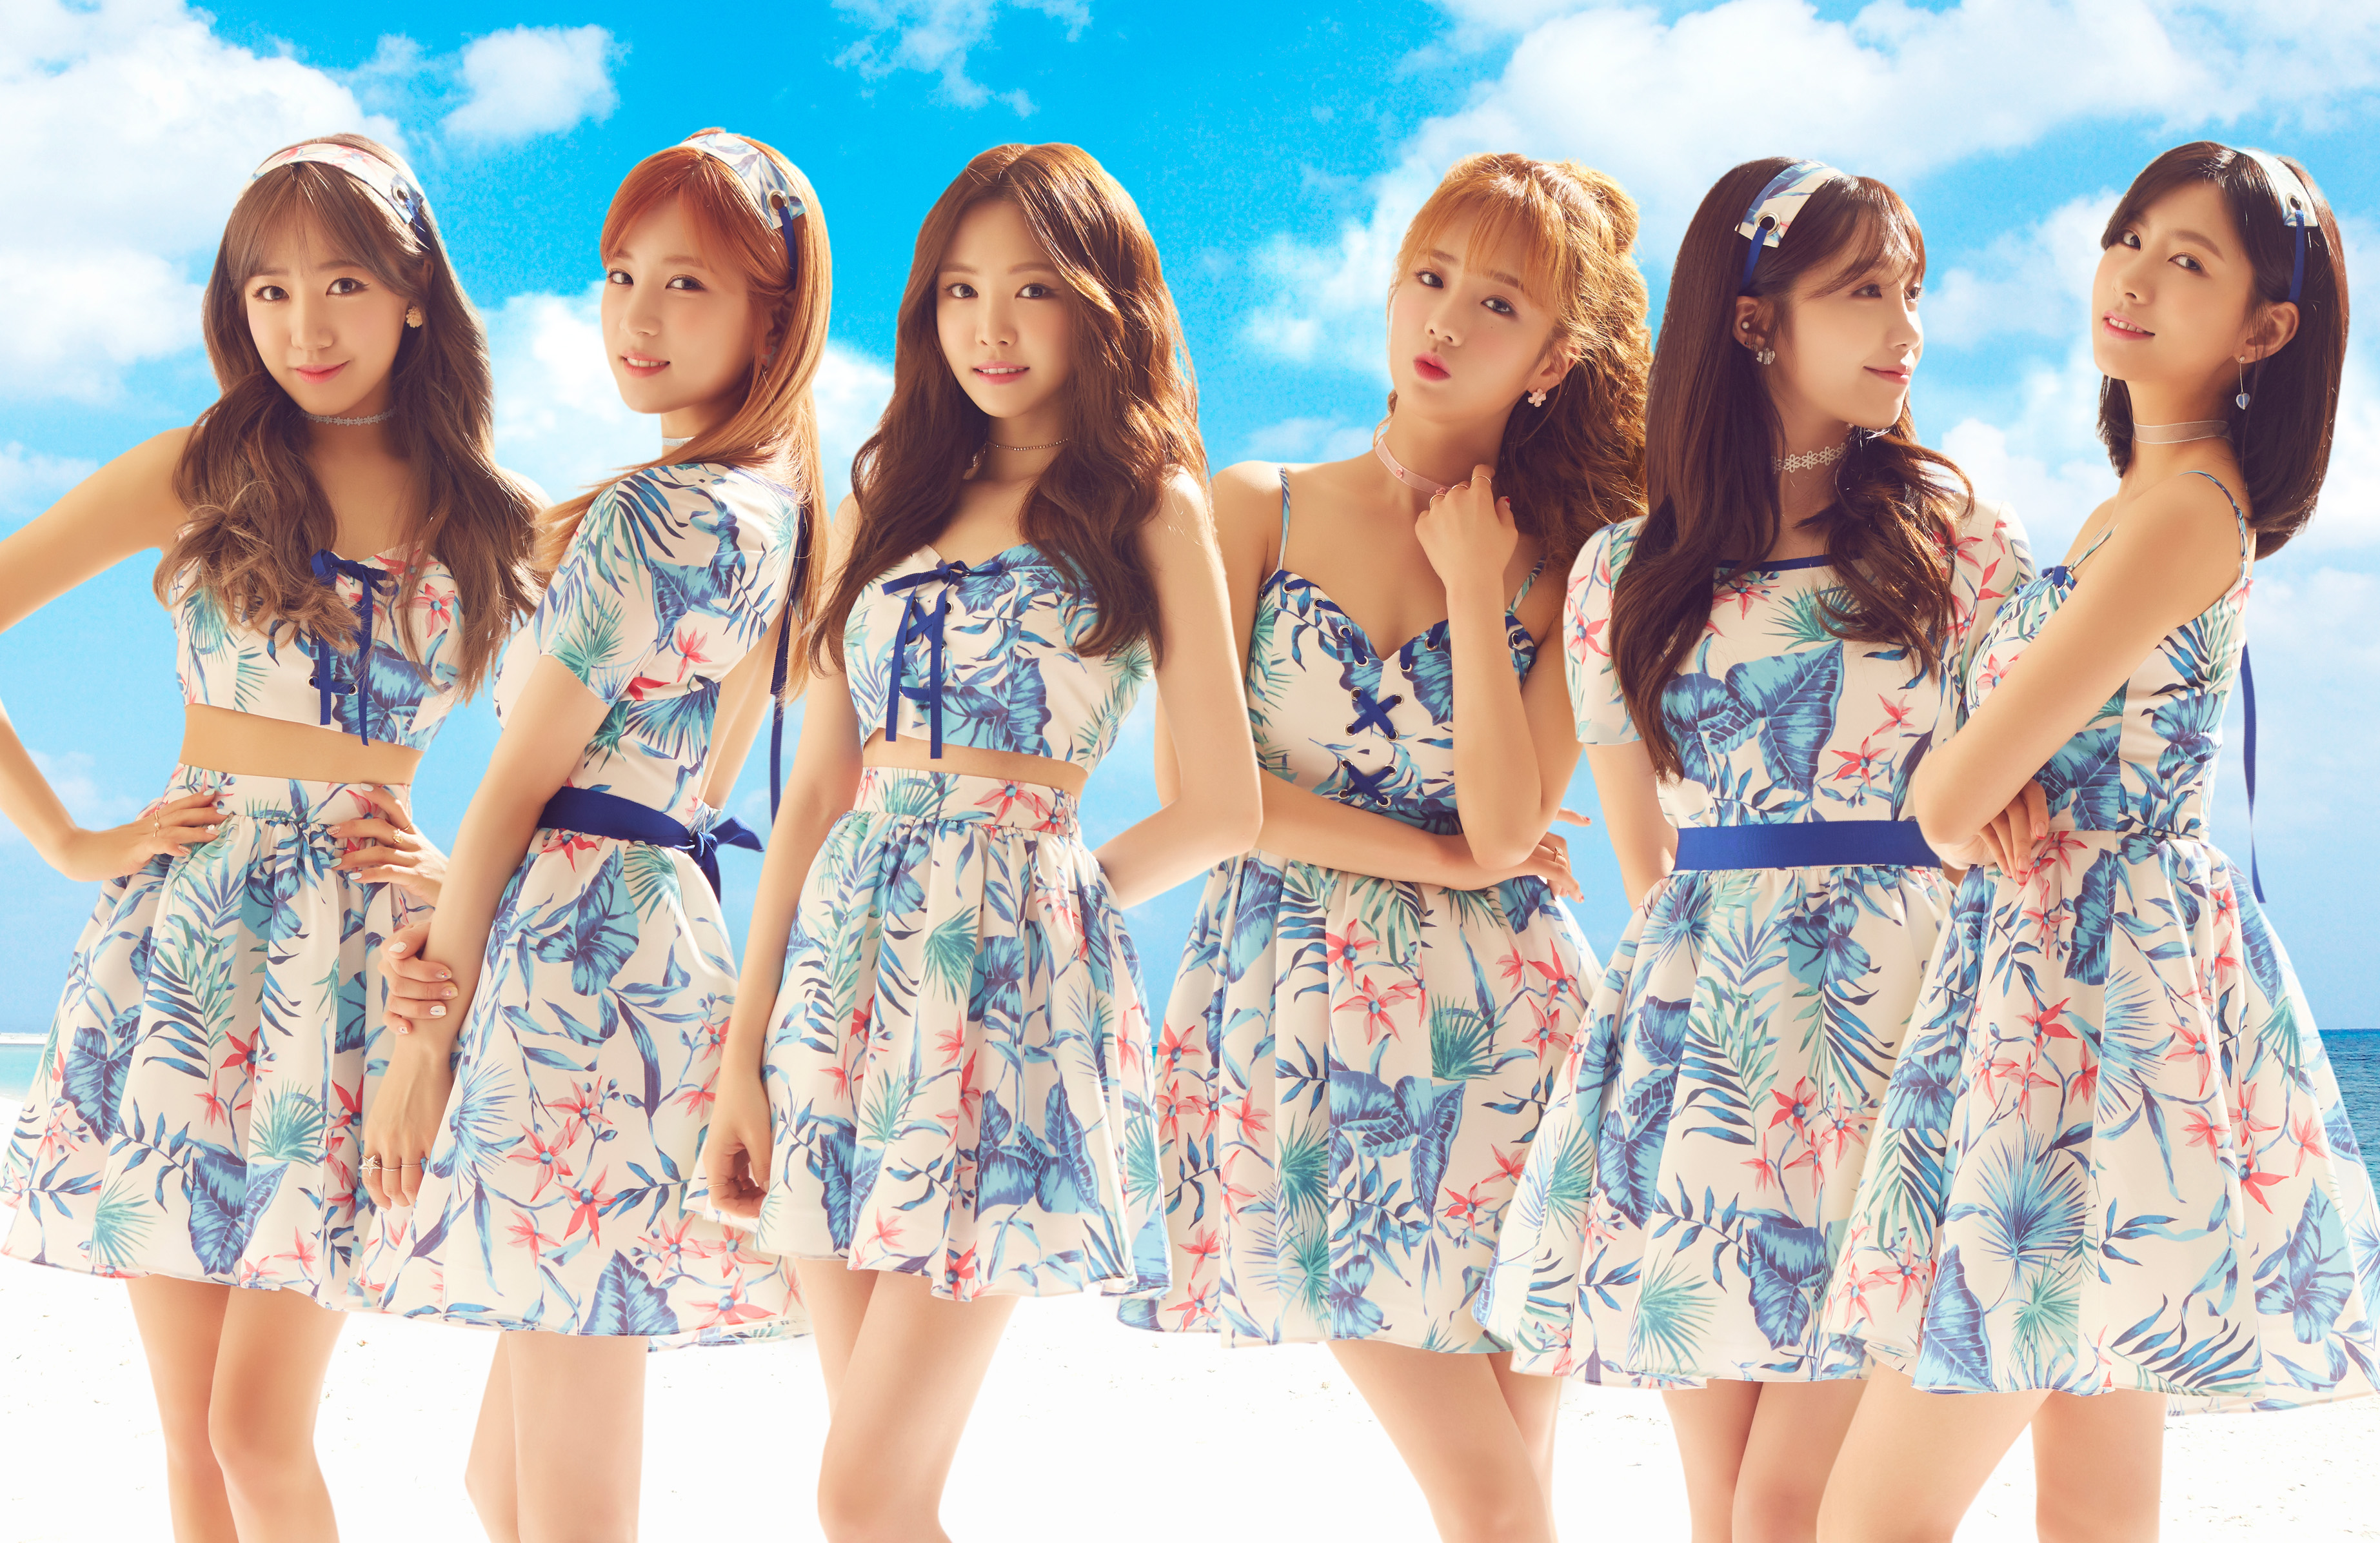 Apink net worth